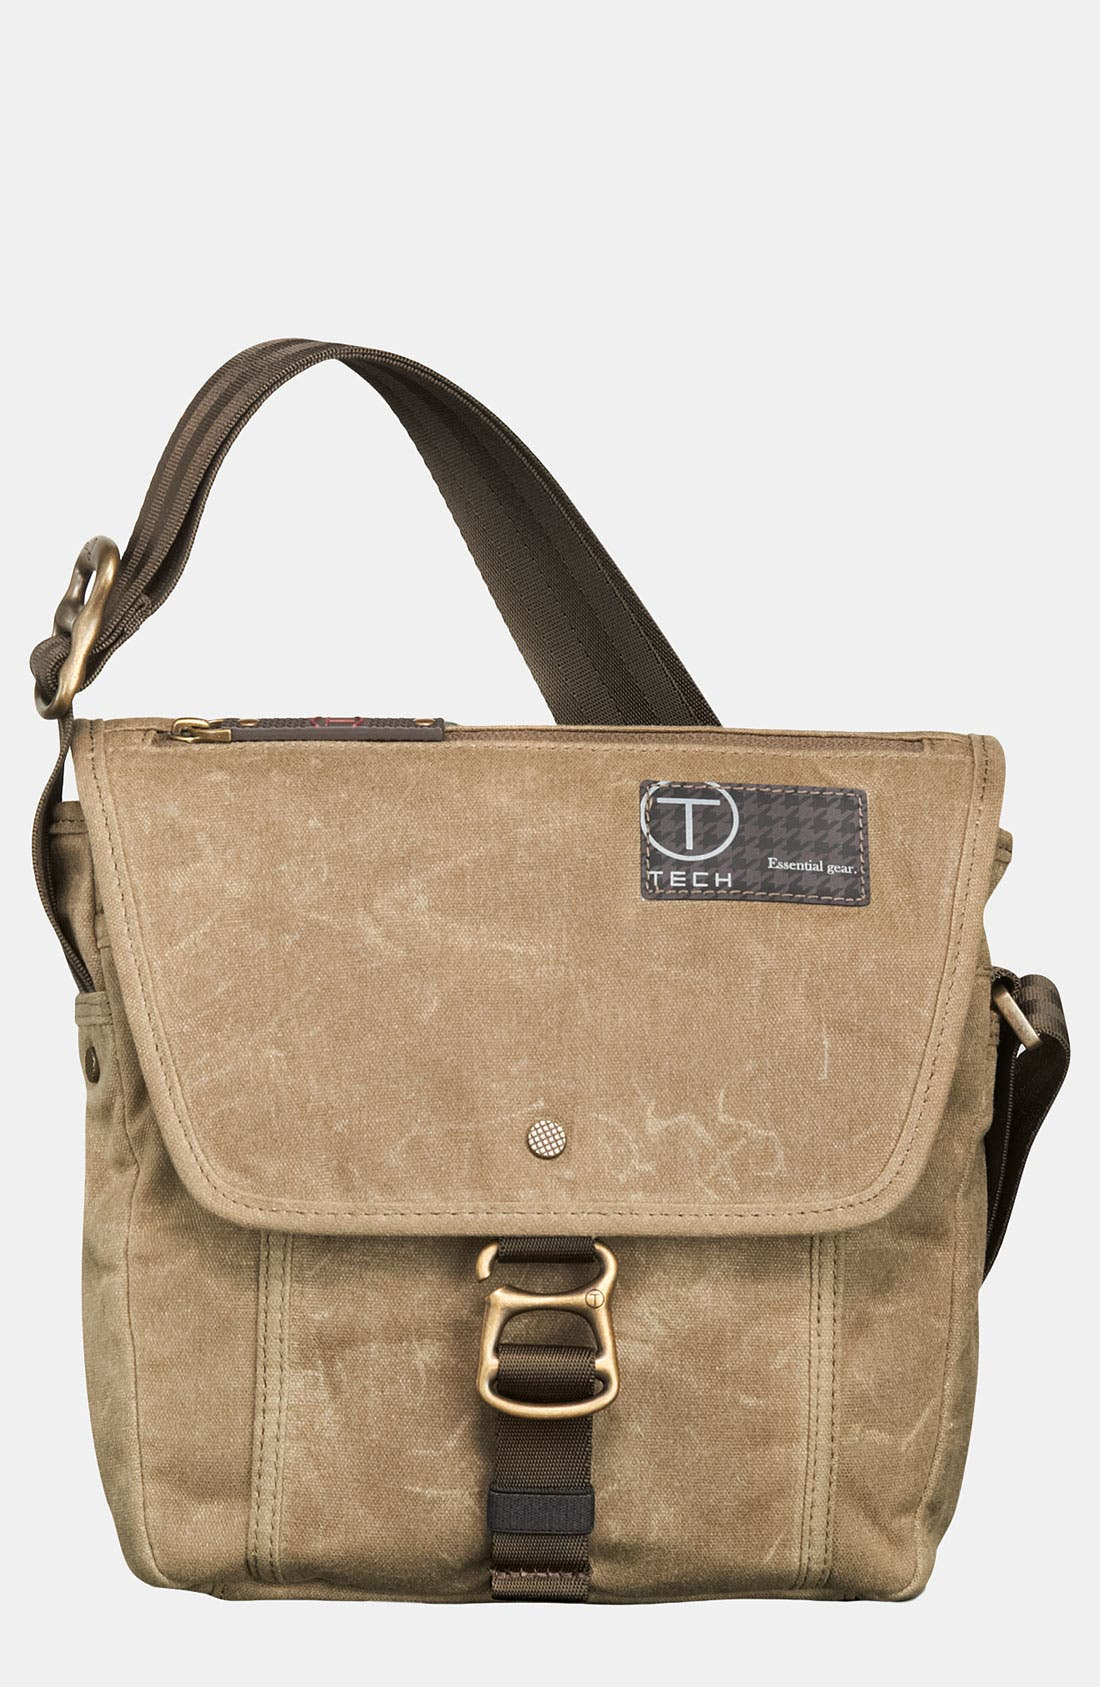 Alternate Image 1 Selected - Tumi 'T-Tech Icon - Lewis Small' Flap Crossbody Bag